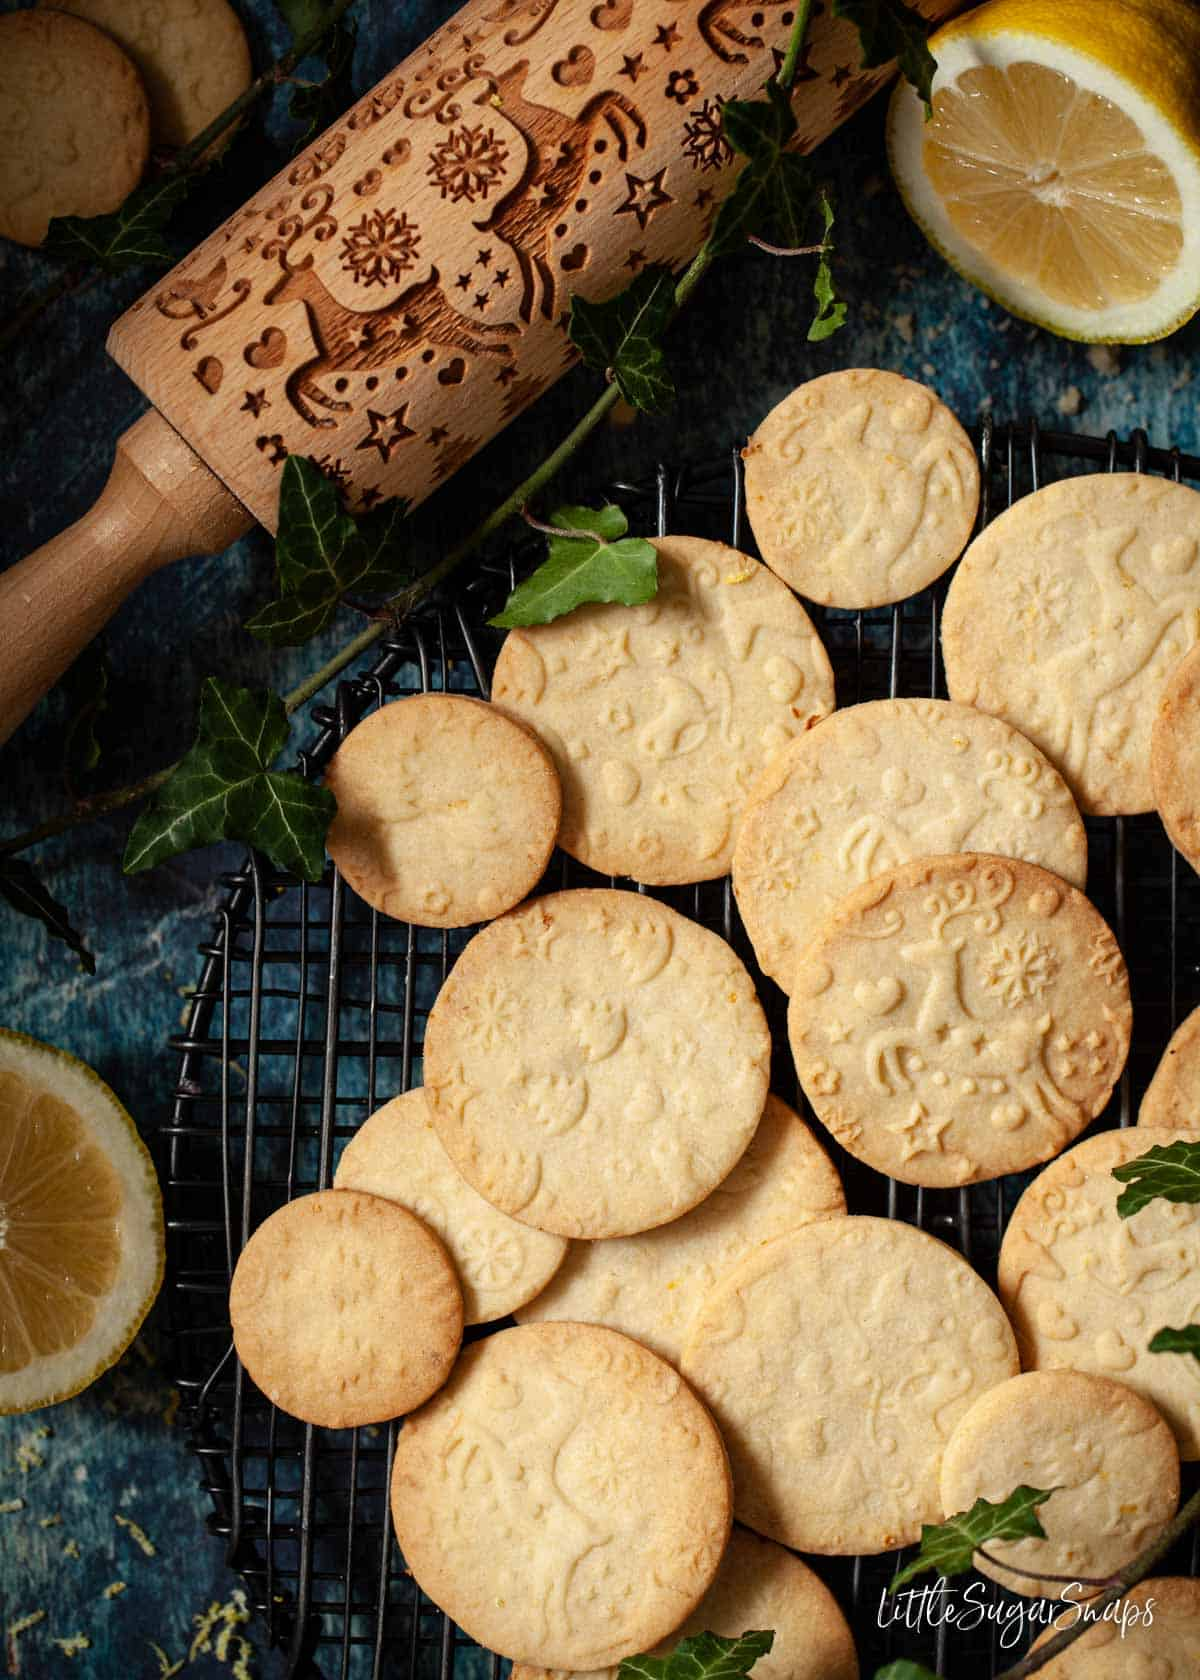 Lemon shortbread cookies with an embossed rolling pin